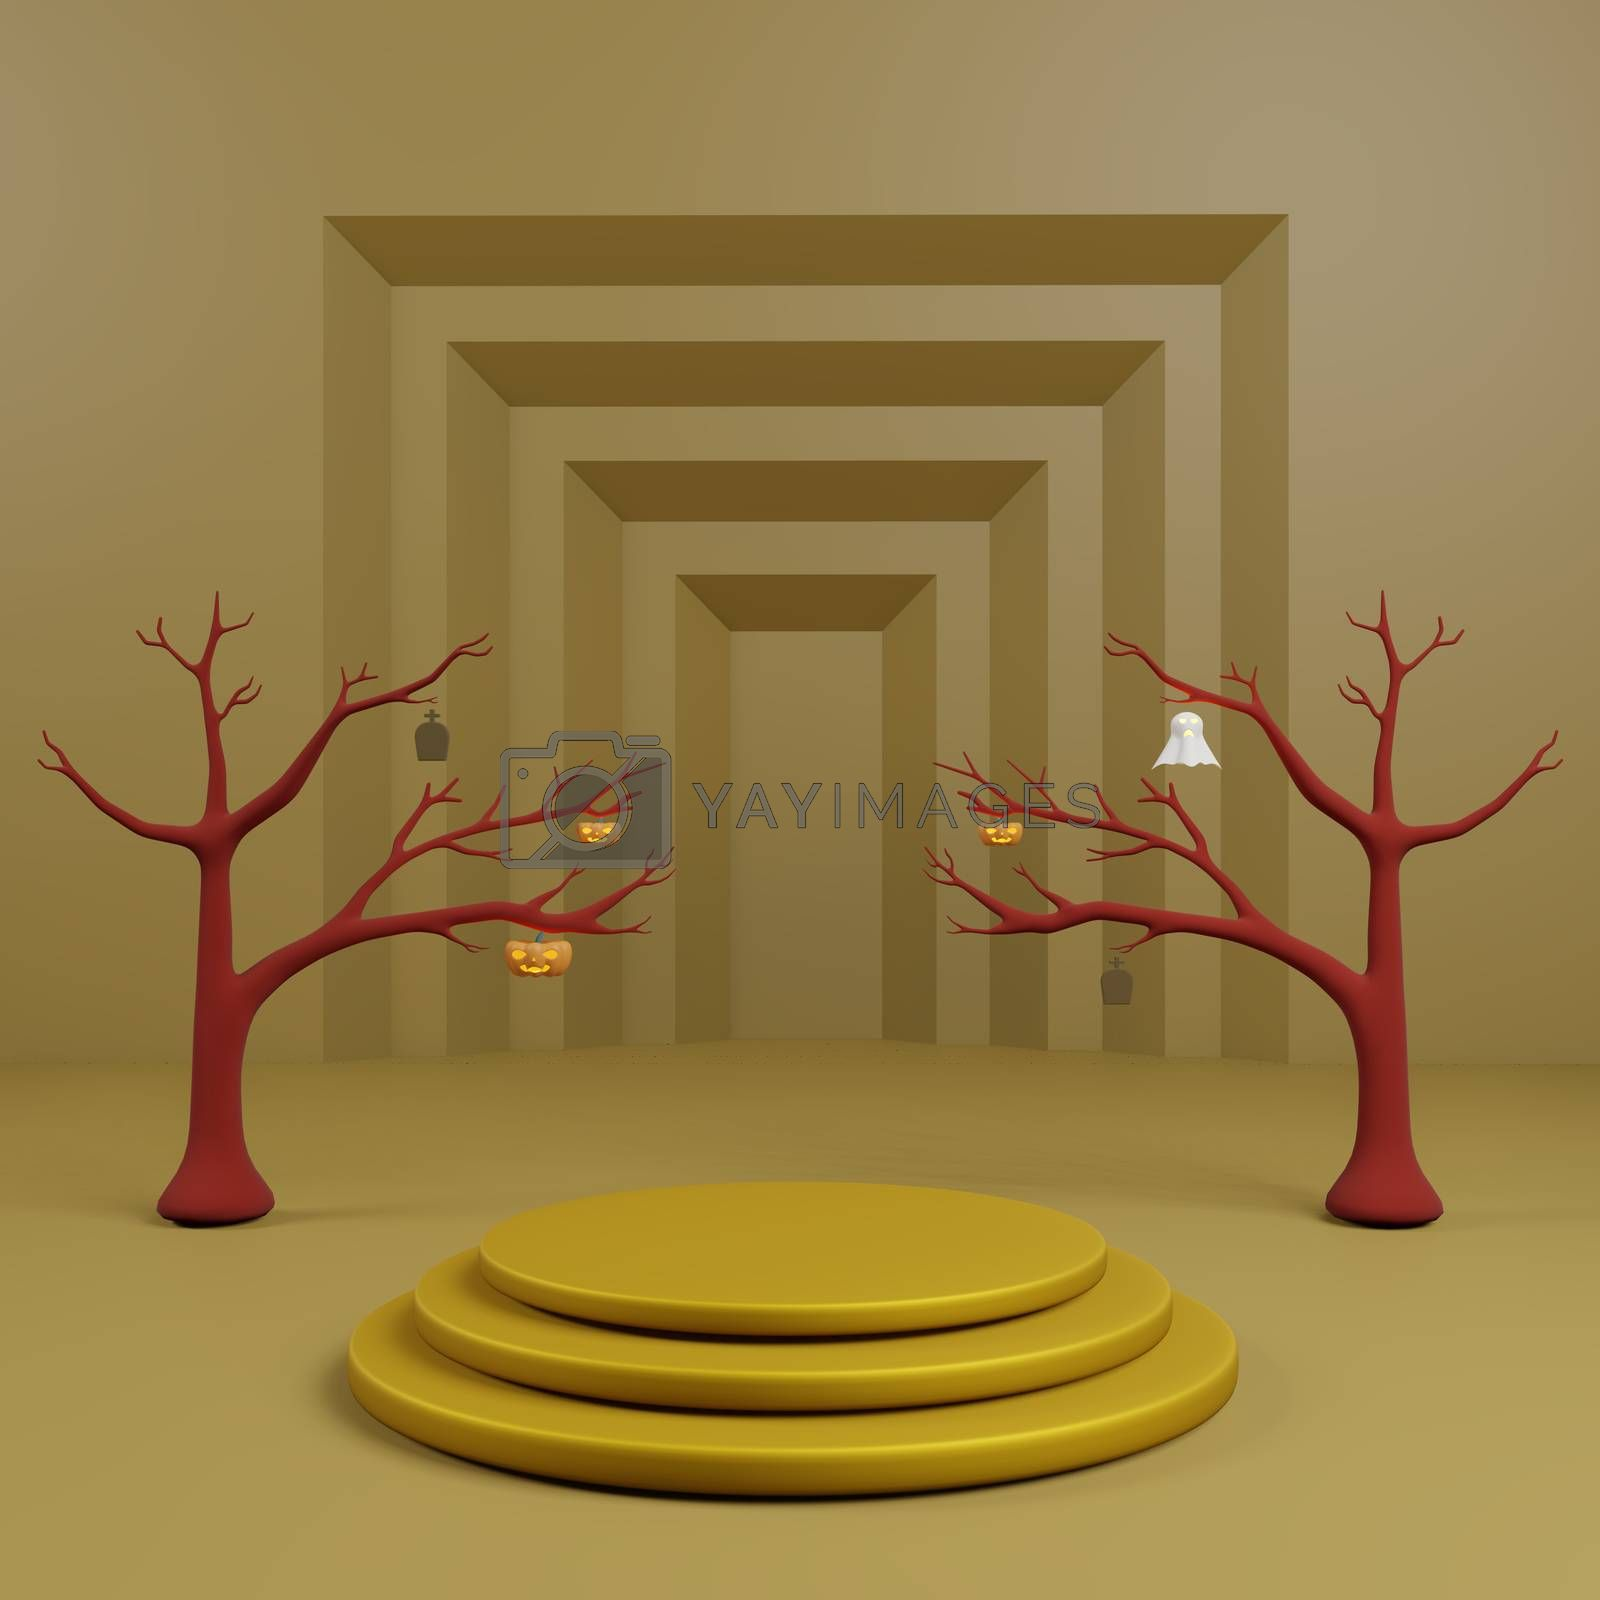 Royalty free image of Golden podium or stage background have dead tree halloween scene by eaglesky